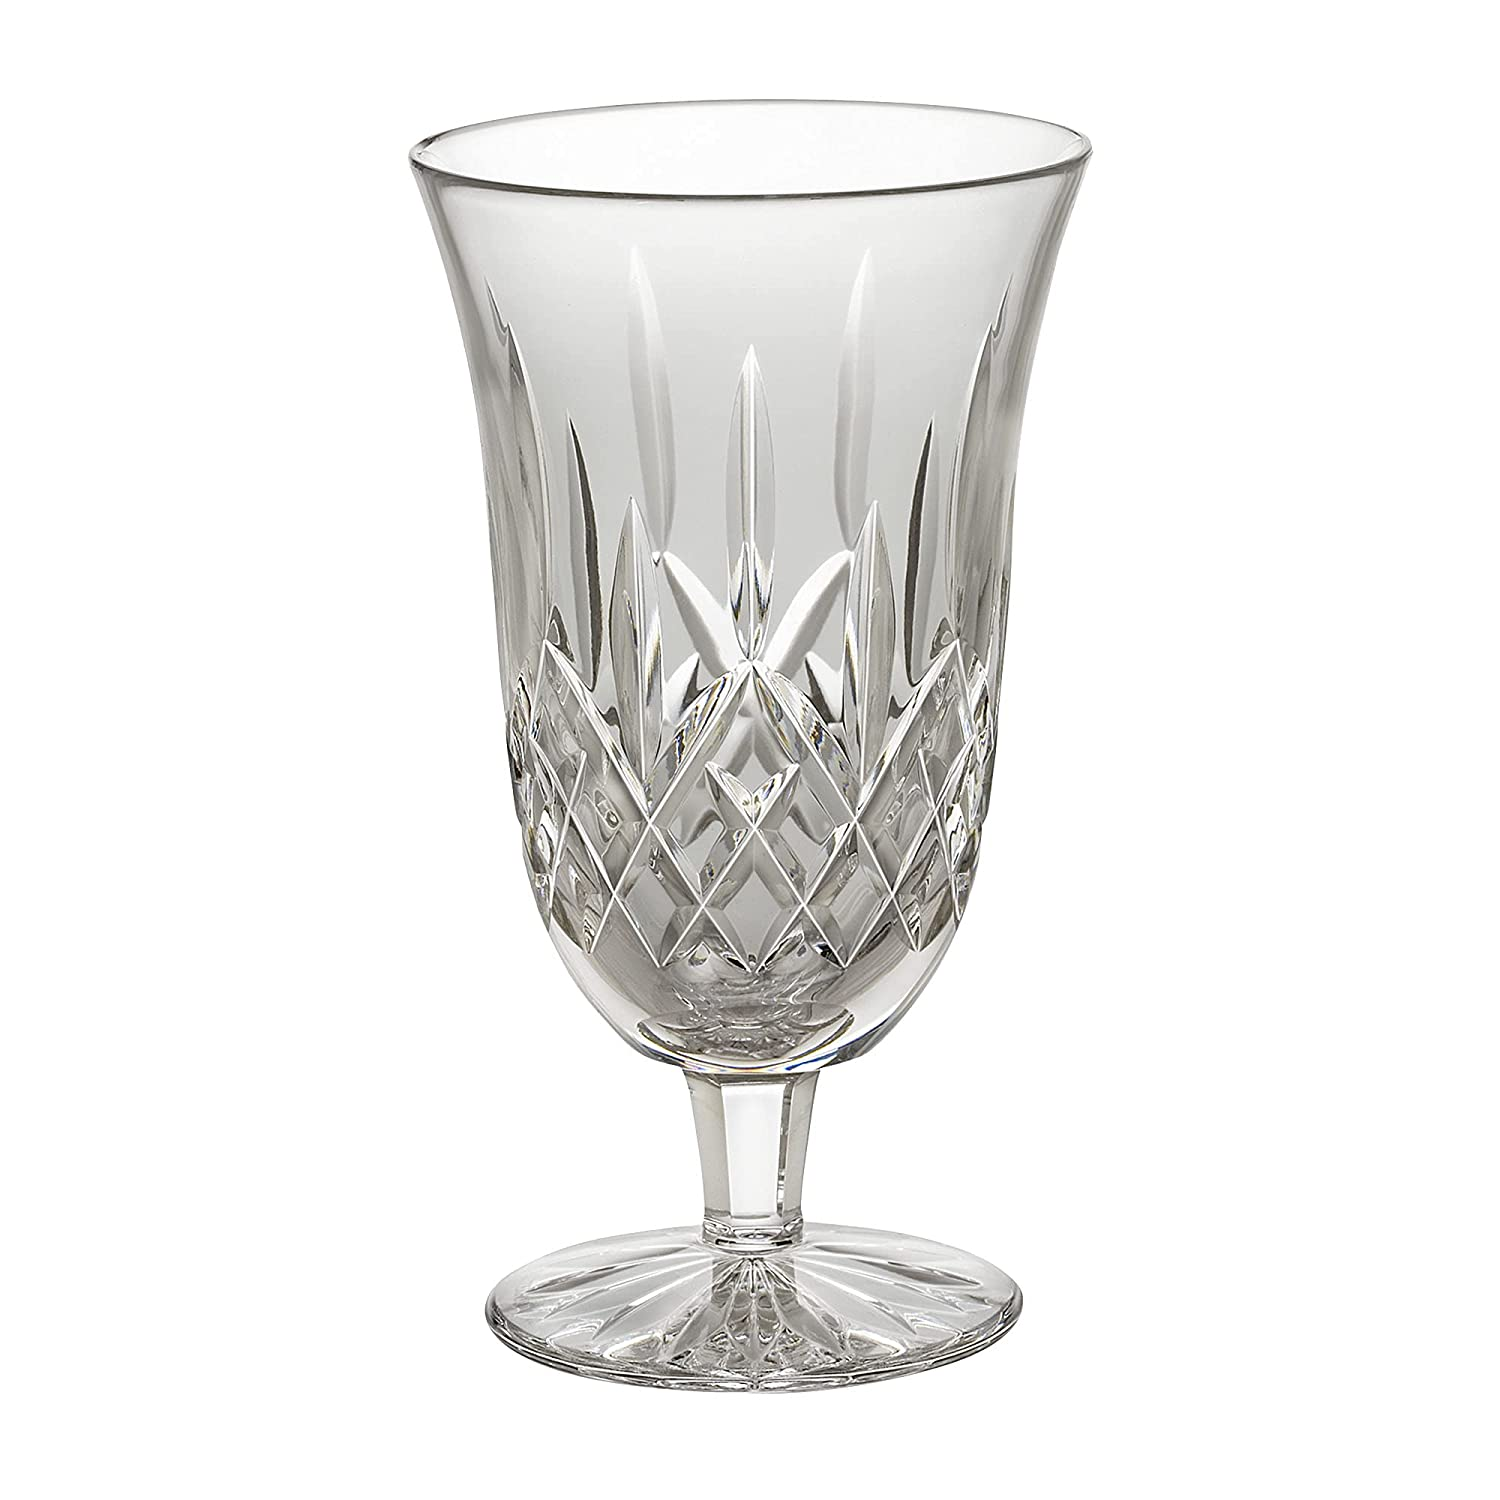 Special price for Popular brand in the world a limited time Waterford Lismore Iced 12oz Glass Beverage